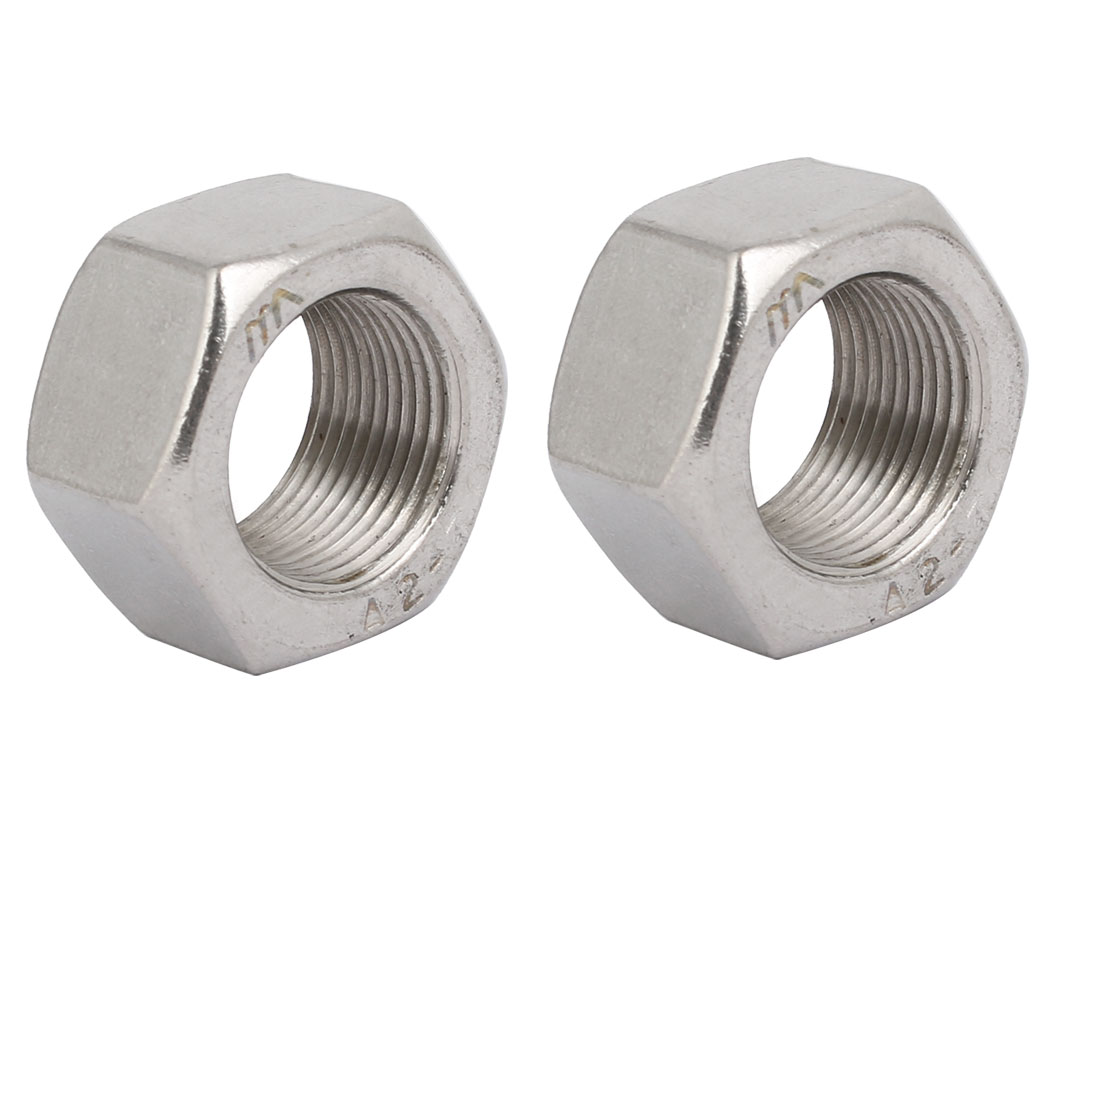 2pcs M22 x 1.5mm Pitch Metric Fine Thread 304 Stainless Steel Hex Nuts